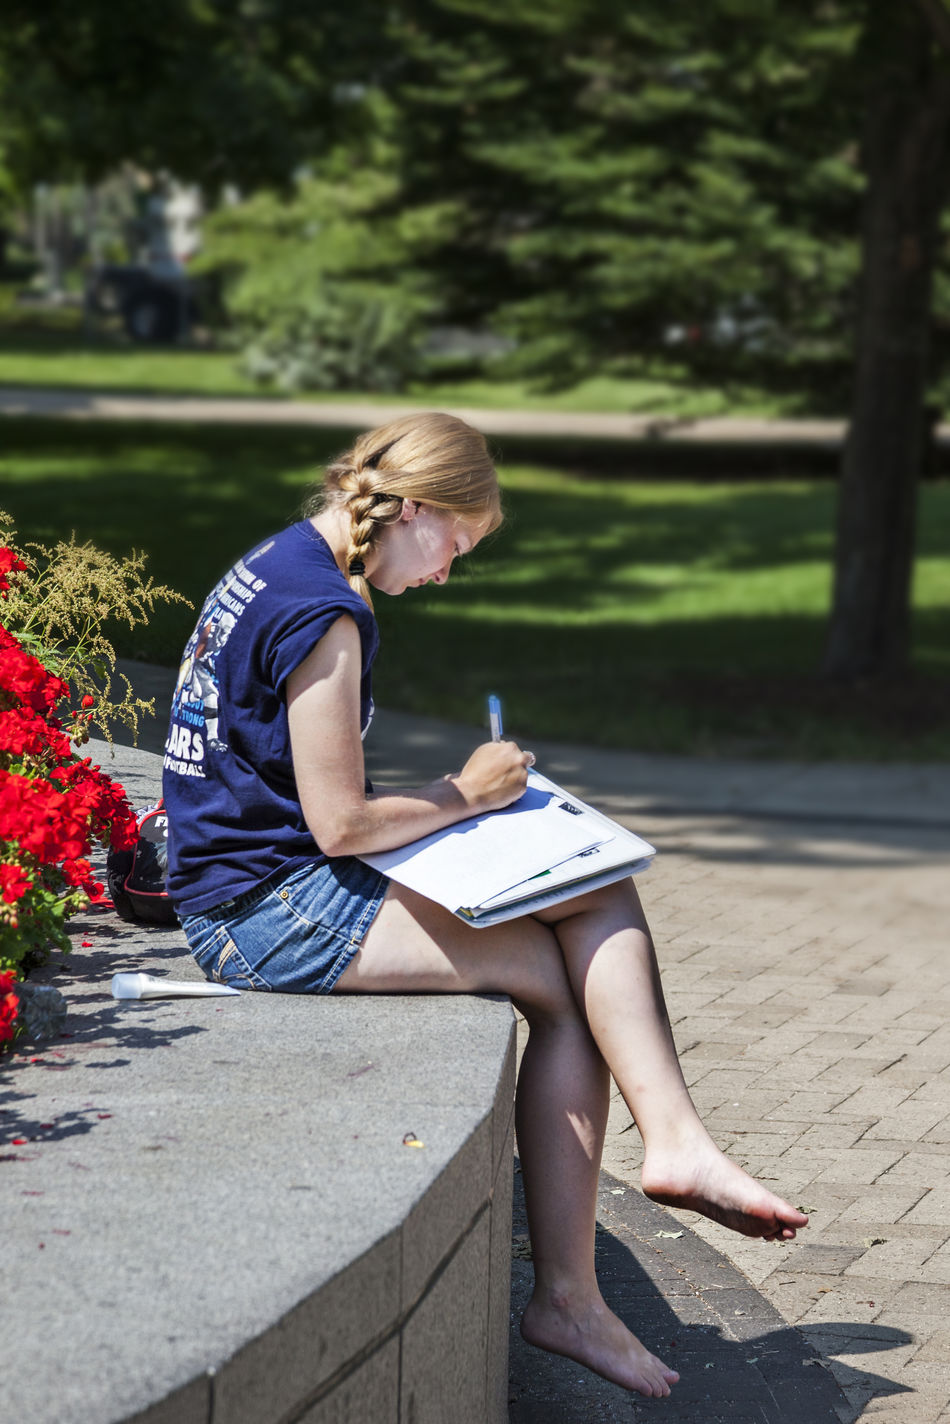 University of Notre Dame USA Color Green Blue Sky Culture Education Green Grass Science And Technology Tree Vertical Composition Campus Christian Famous Knowledge Lawn College Students Female College Students Girl Learn Outdoor Religion Sunny Day University Of Notre Dame USA